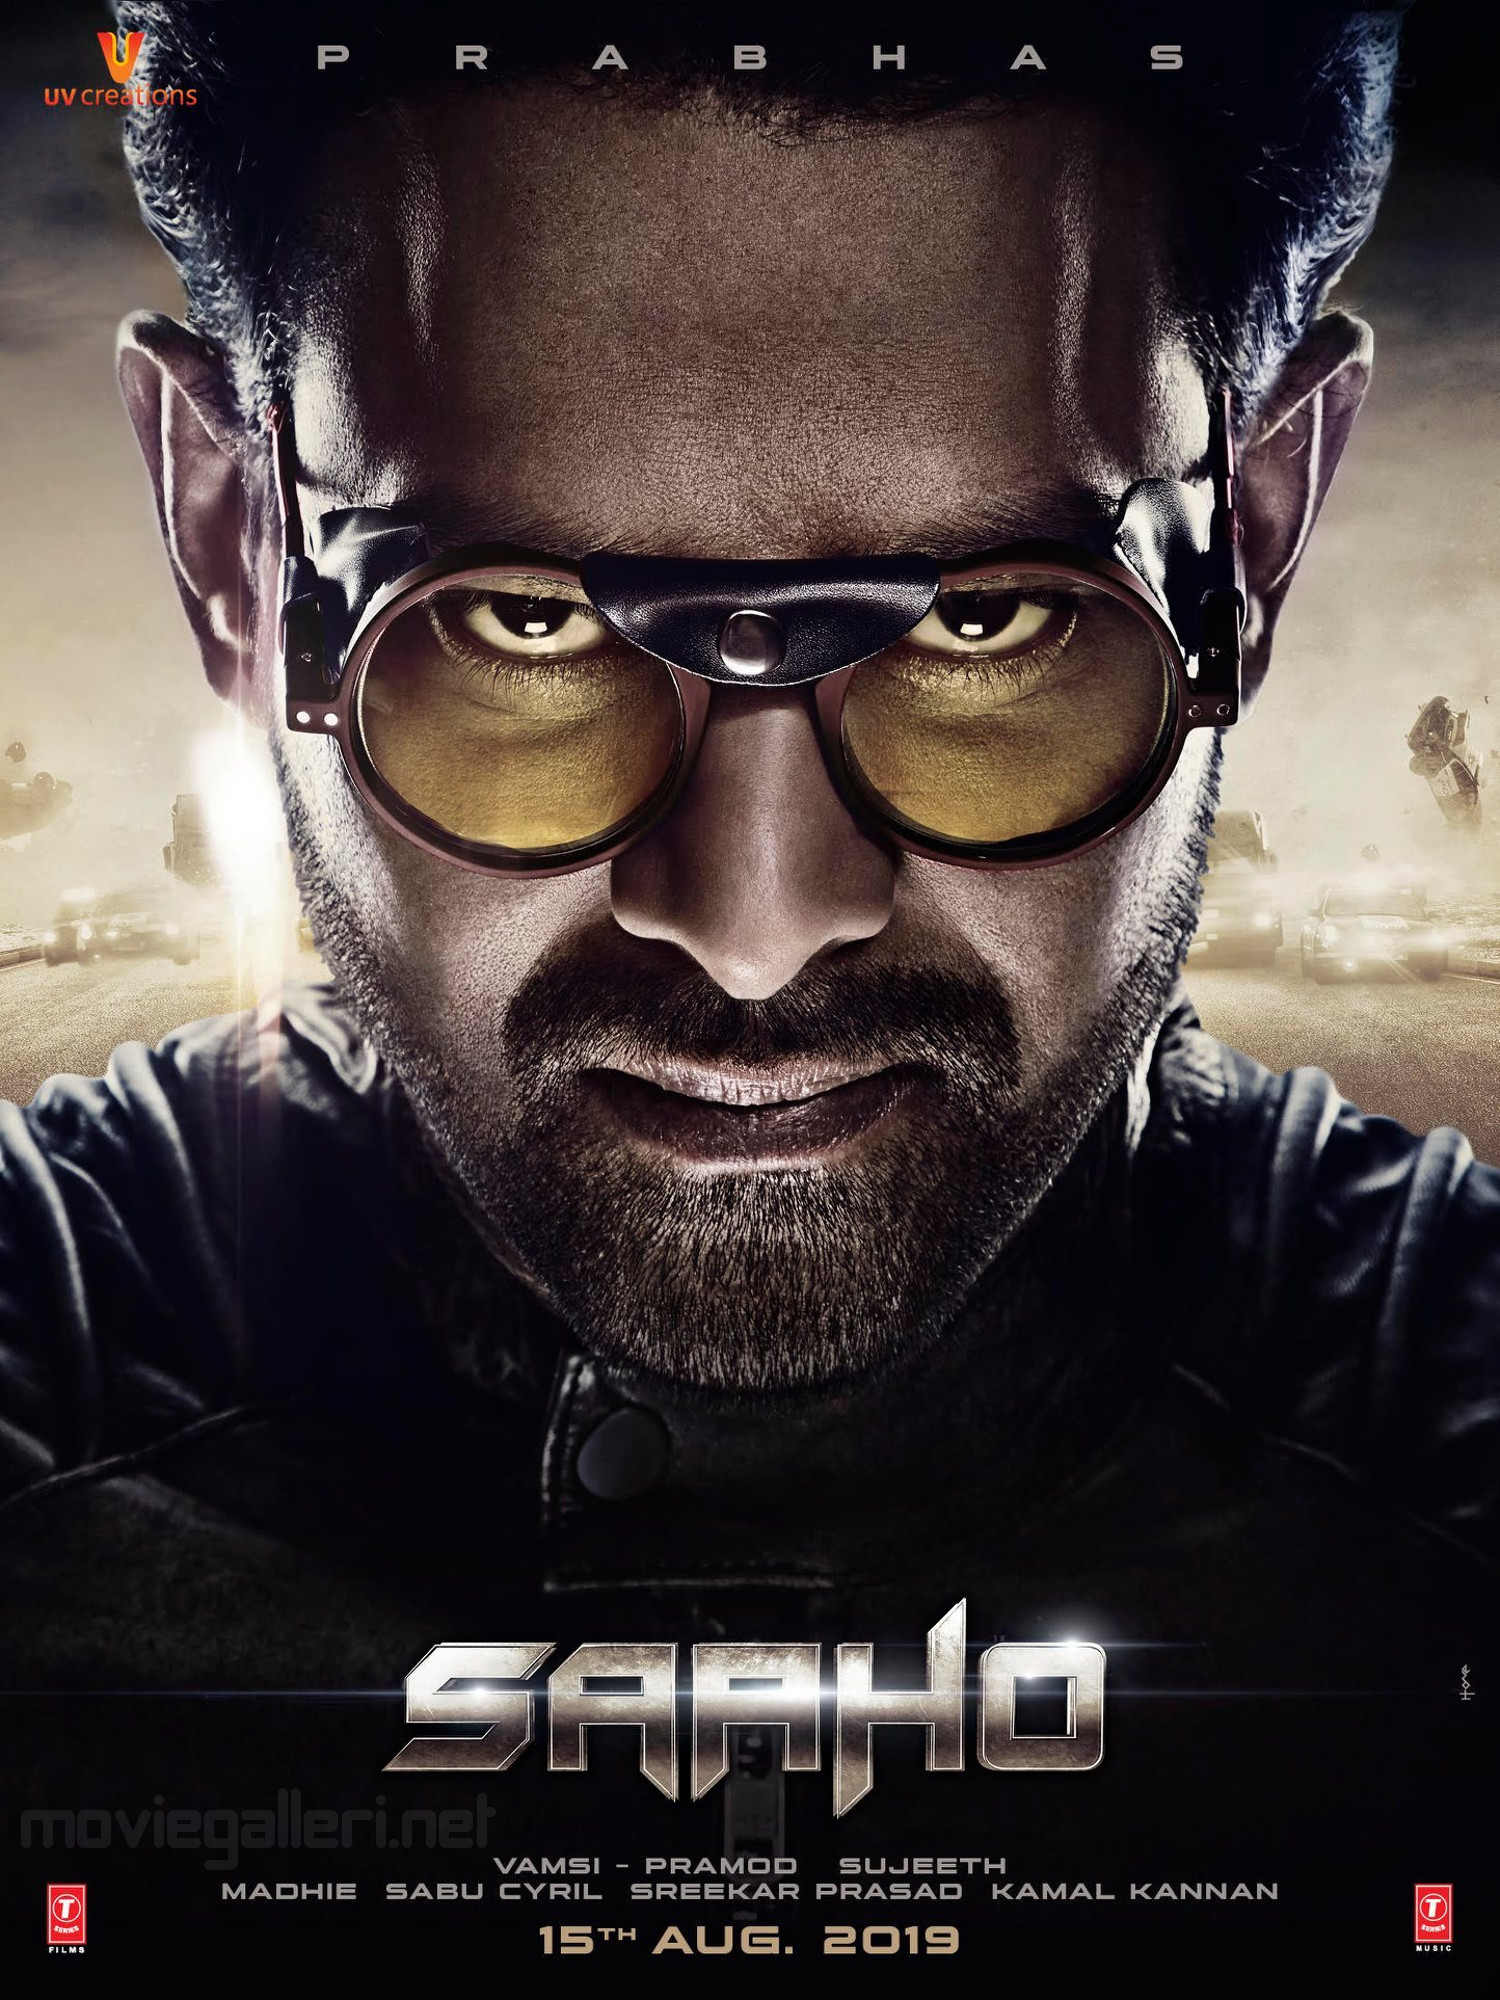 Prabhas Saaho Movie Release Date 15th Aug Poster HD